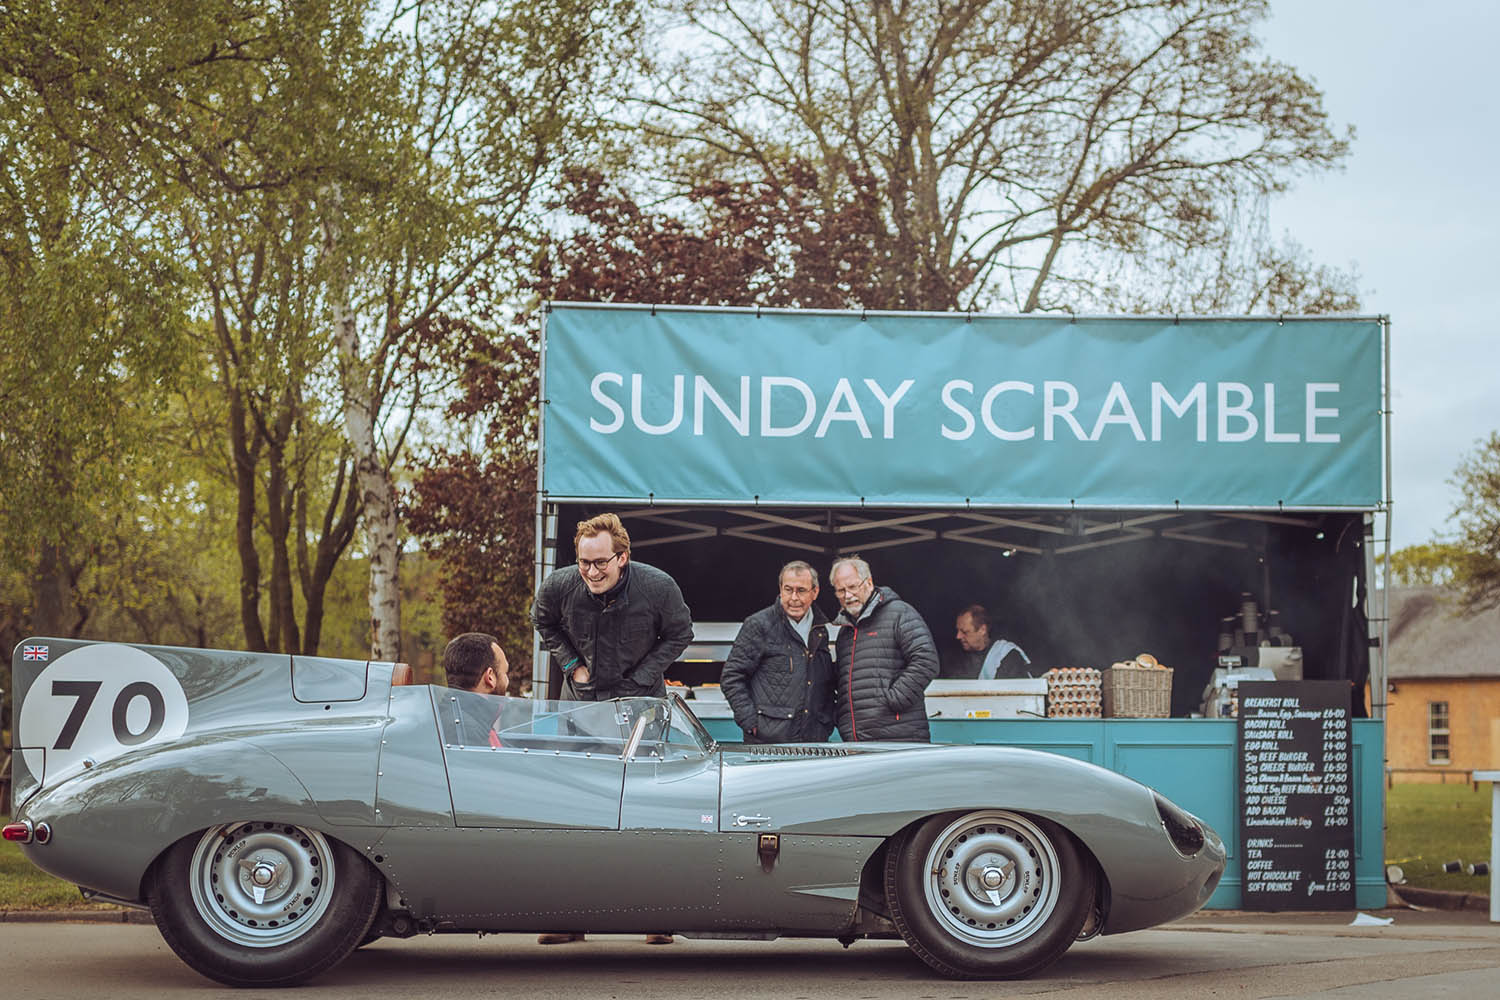 Drive It Day Scramble - credit Nick Chivers @theclassicseries 16.jpg